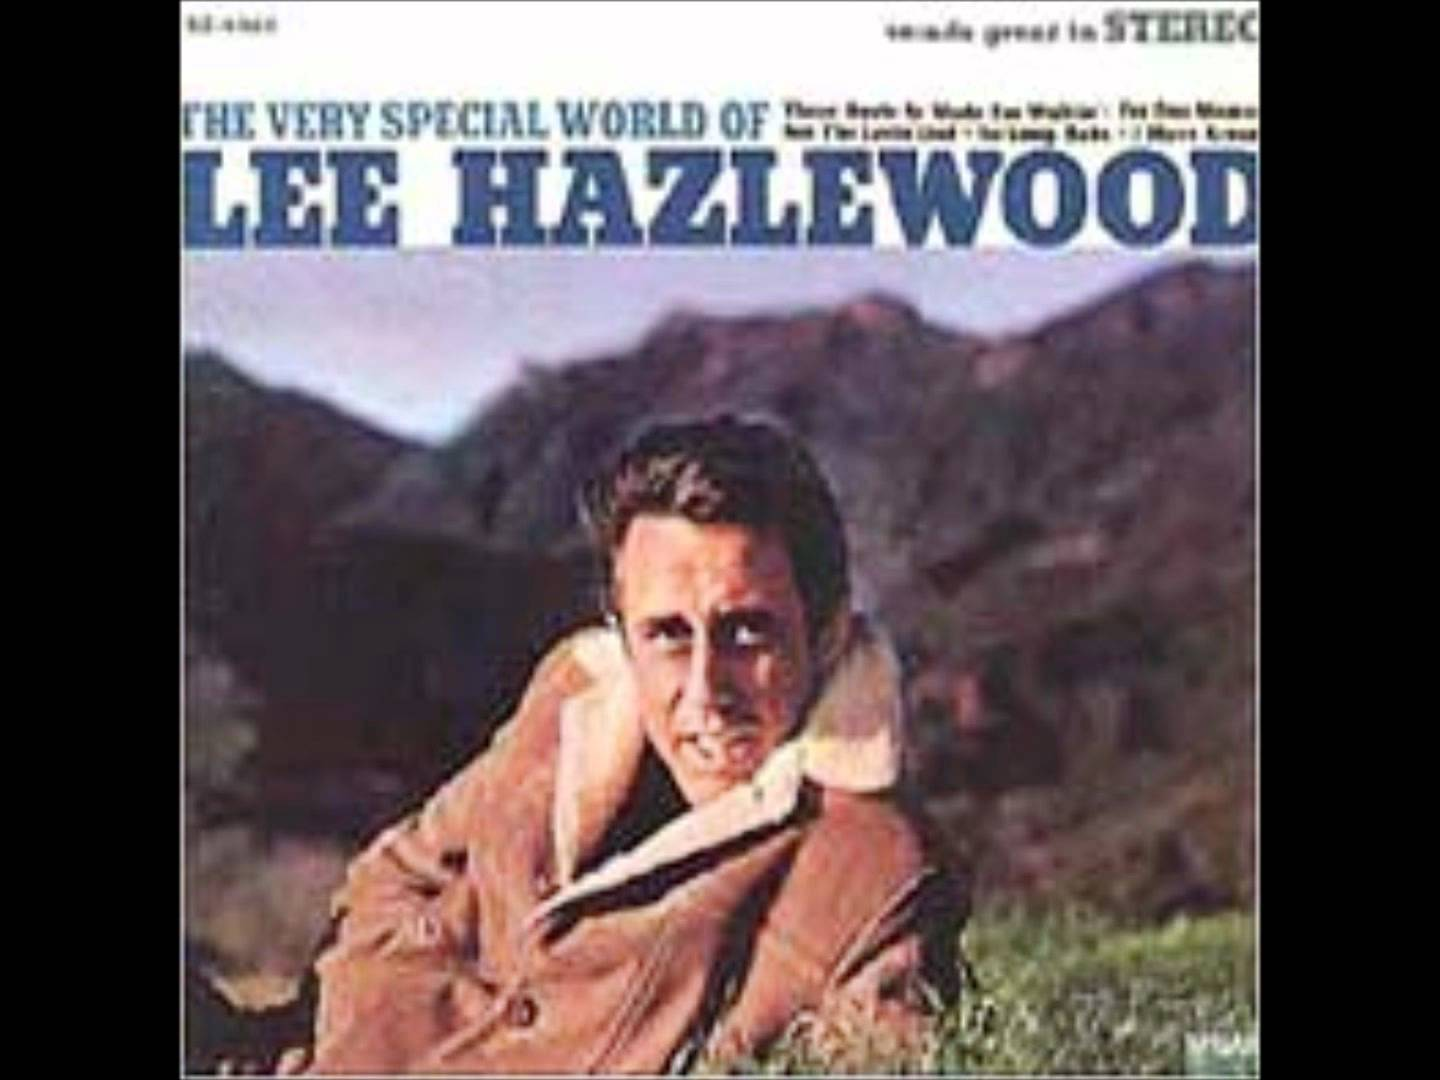 Lee Hazlewood - For One Moment